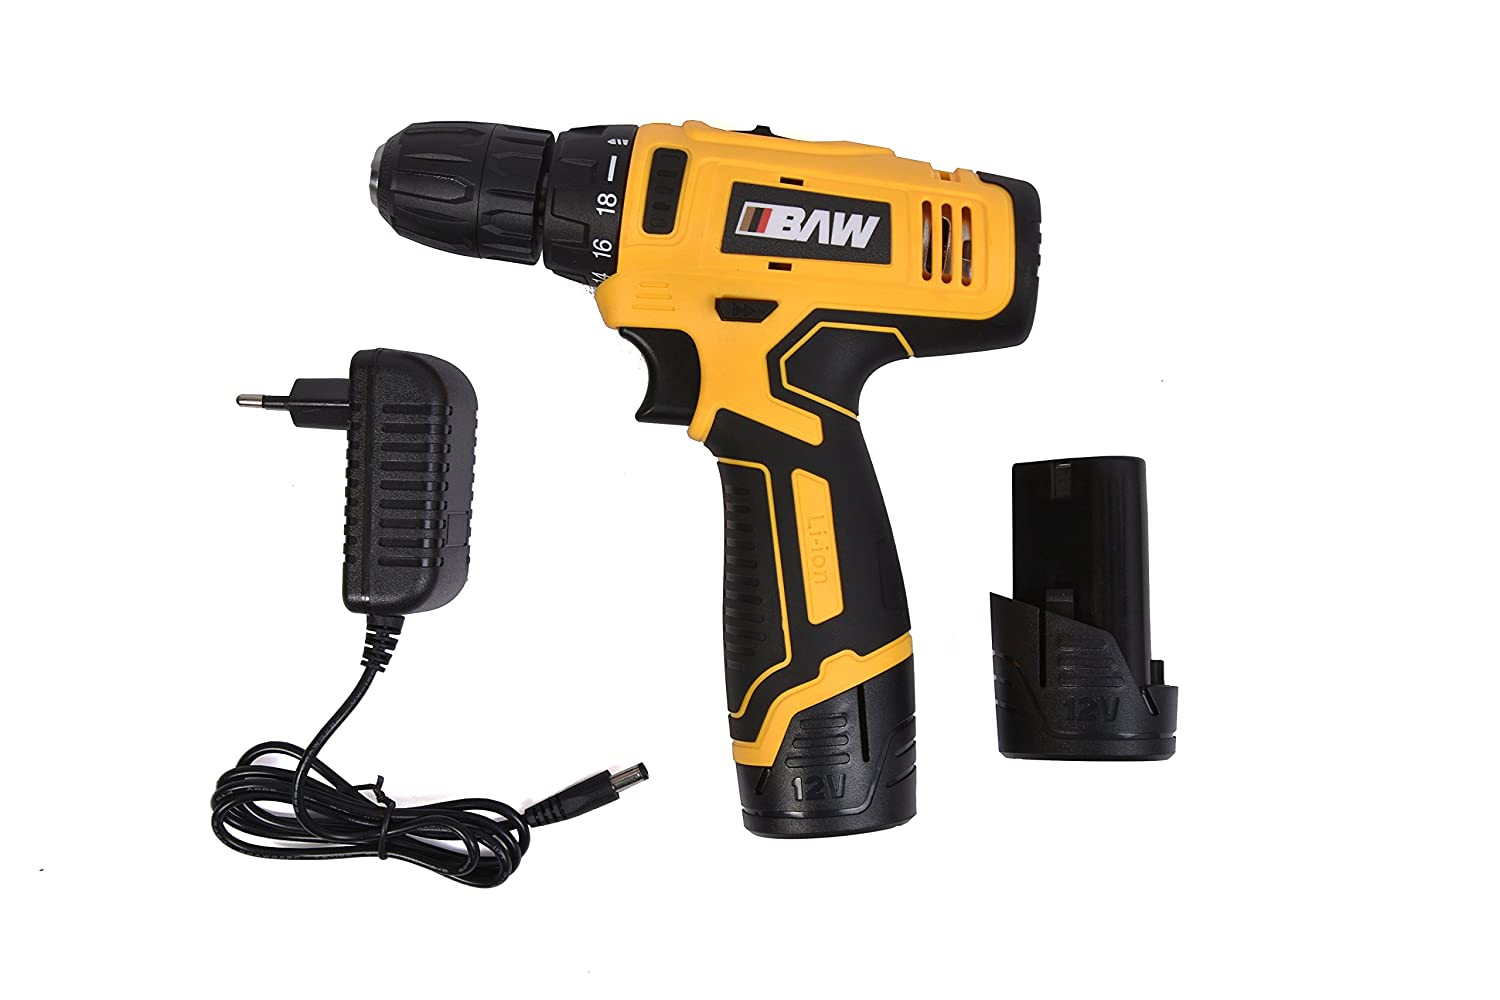 BAW Cordless screwdriver-10 MM with 2 Nos. Batteries-12 V- 2 Mode Speed  Reversible: Amazon.in: Industrial & Scientific